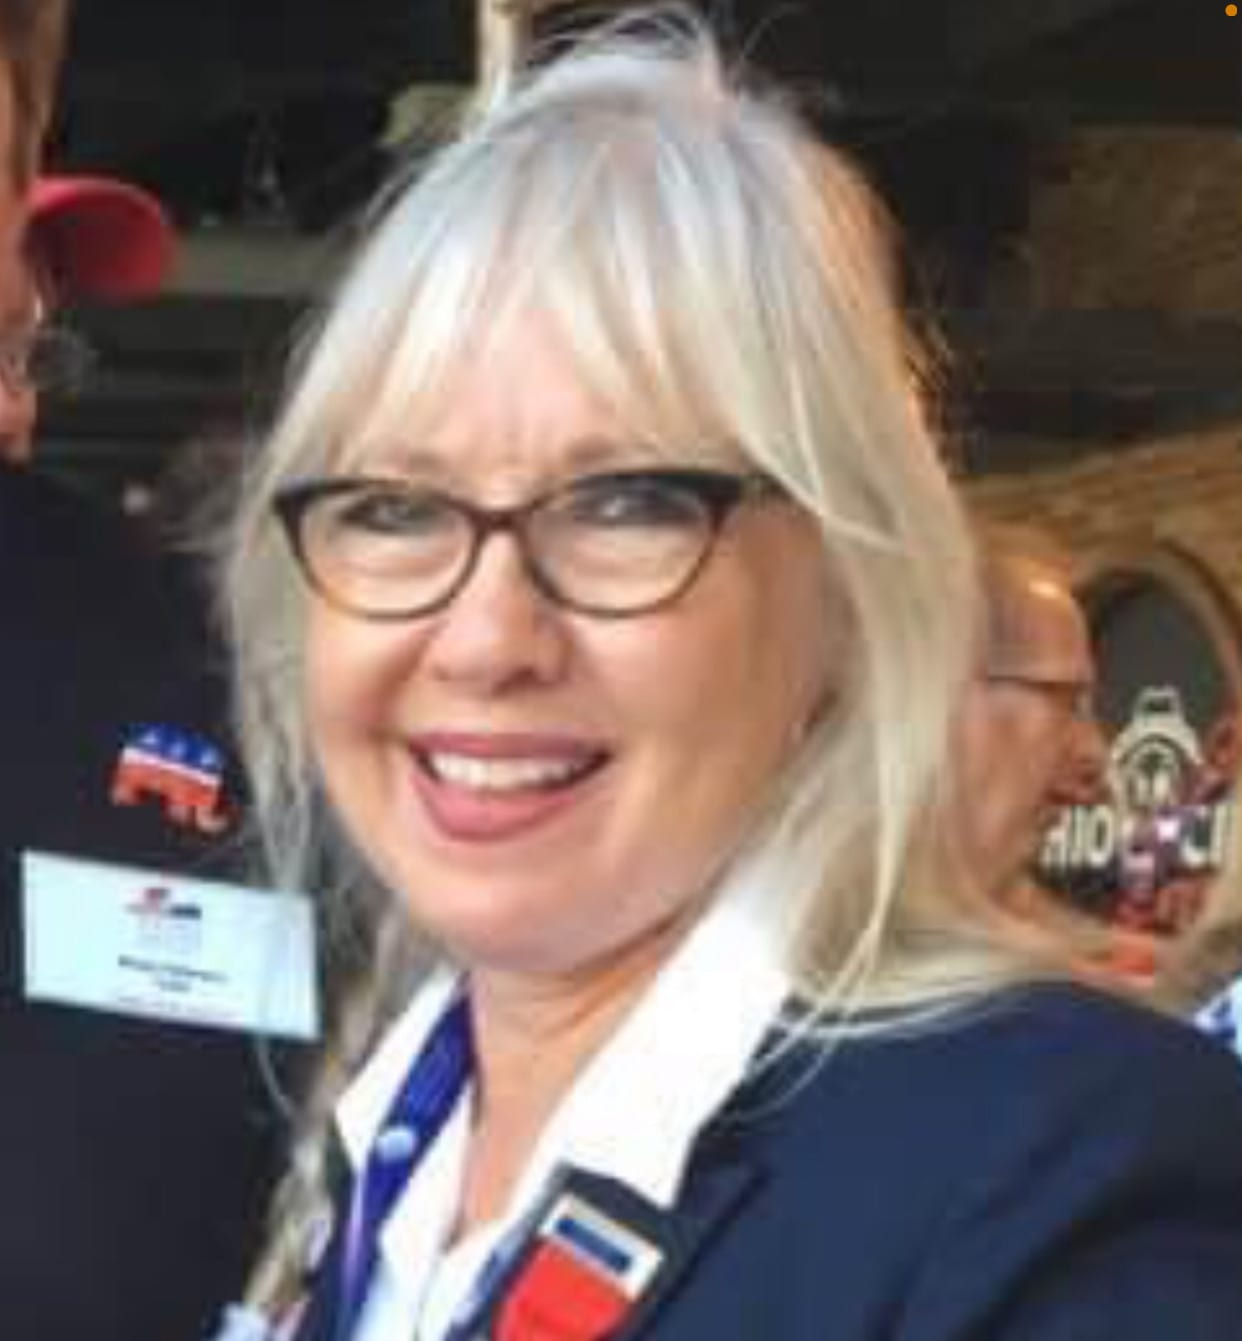 Ep41 - Oklahoma Cattle Rancher Andrea Hutchison Sounds the Alarm On How Globalists Are Trying To Regulate Your Burger Out of Existence!